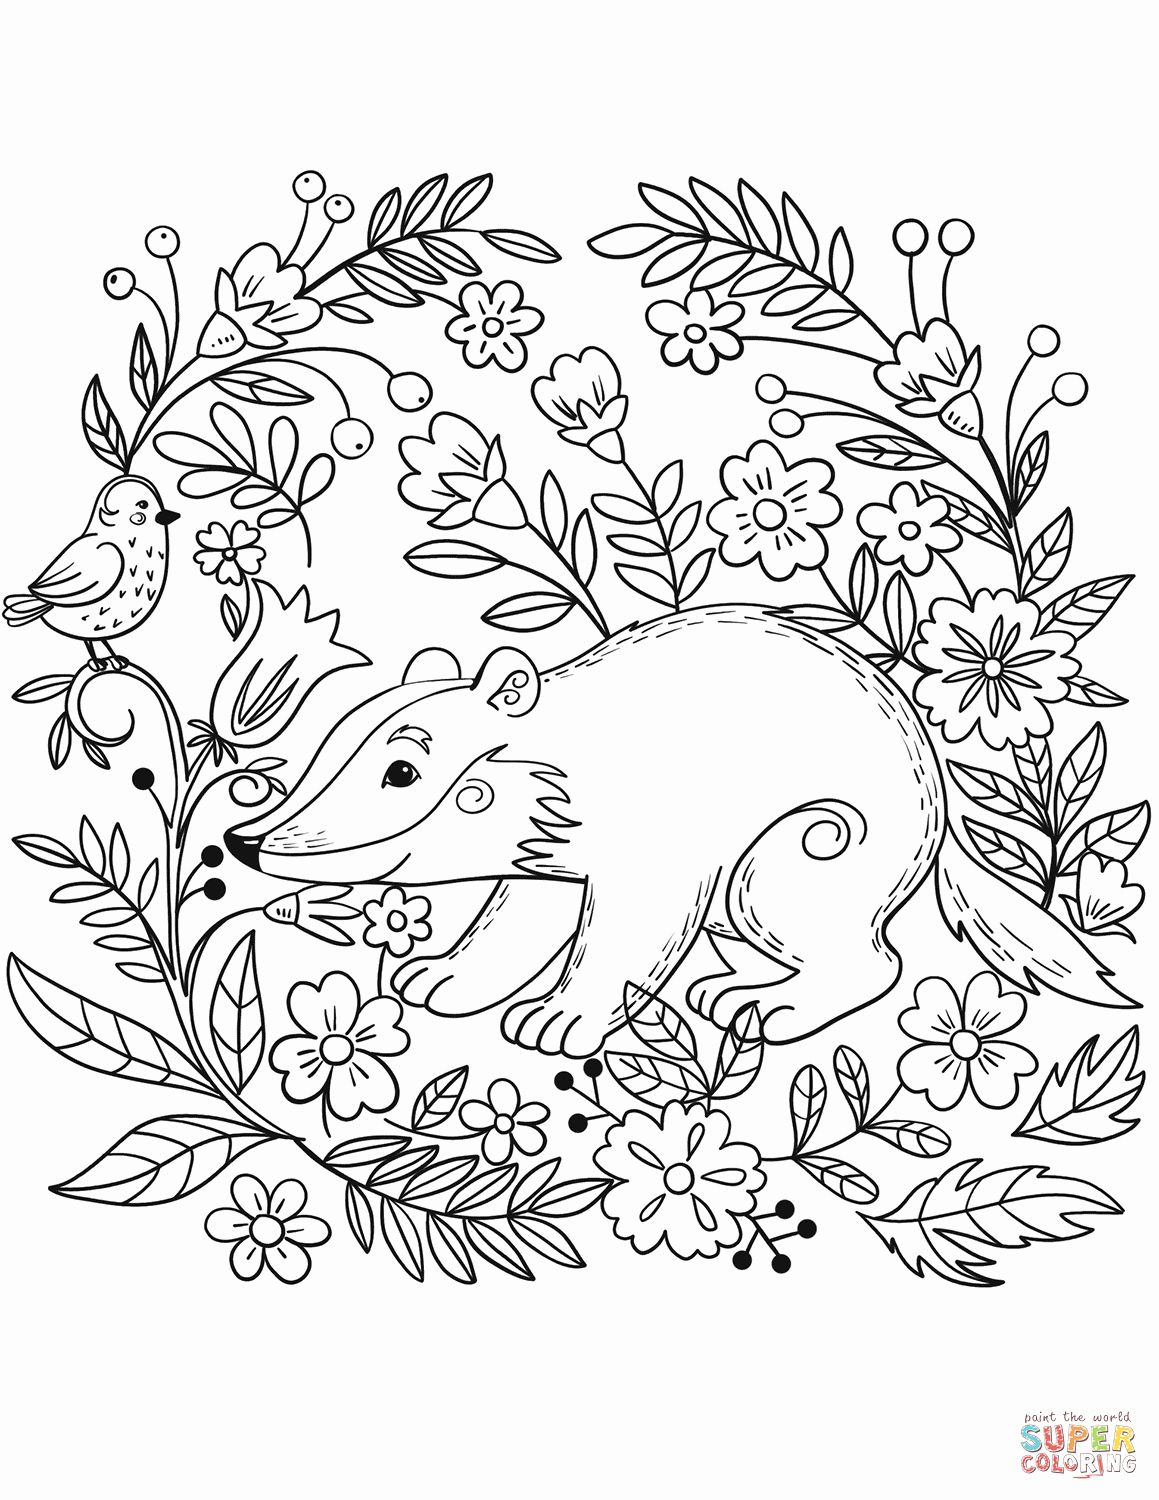 nocturnal animals coloring sheets nocturnal animals coloring pages timeless miraclecom coloring sheets animals nocturnal